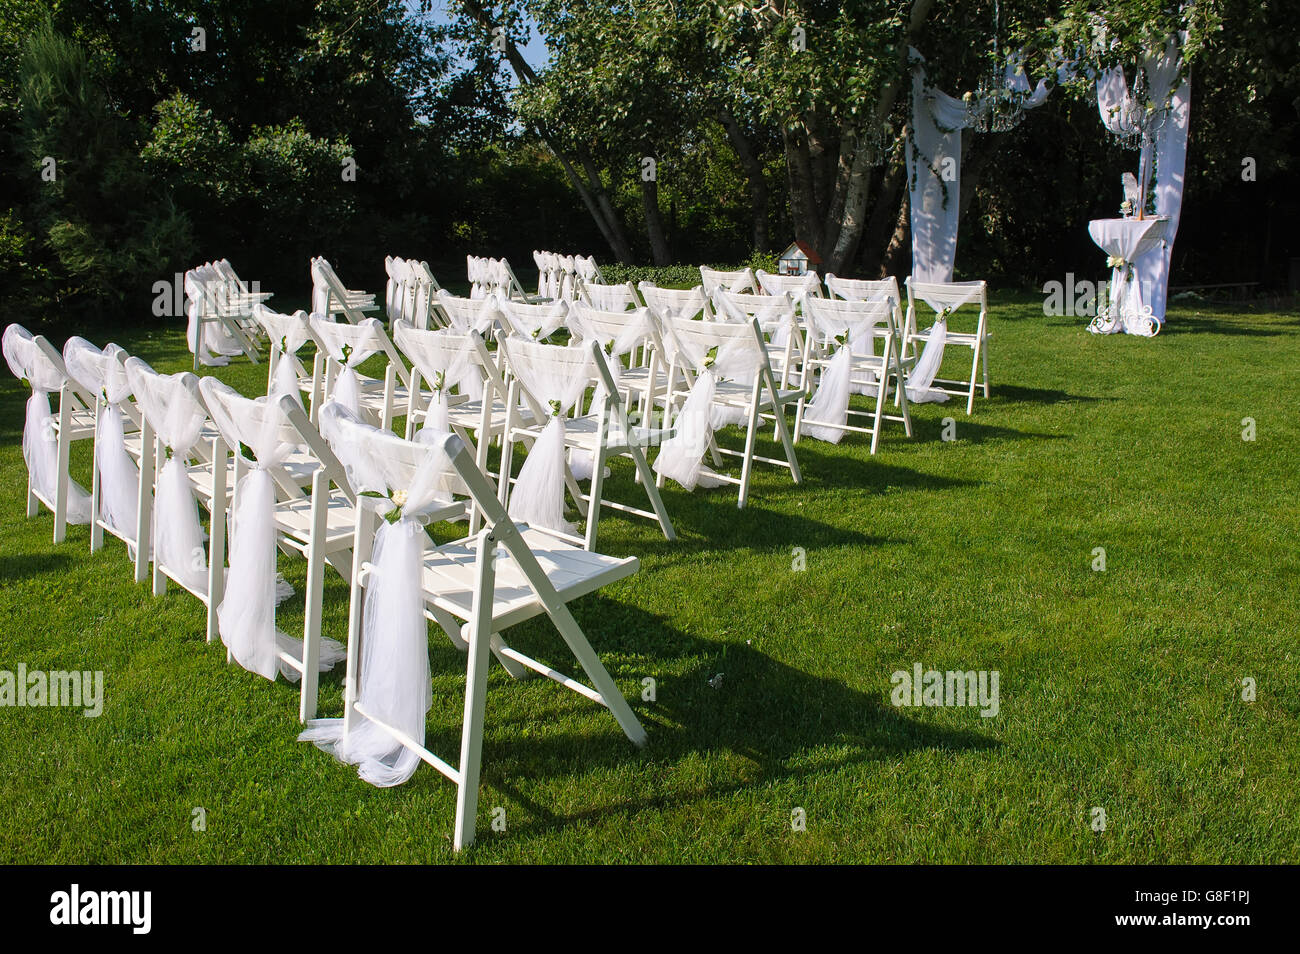 Wedding ceremony chair -  Arch For Wedding Ceremony White Decorated Chairs On A Green Lawn Chairs Set In